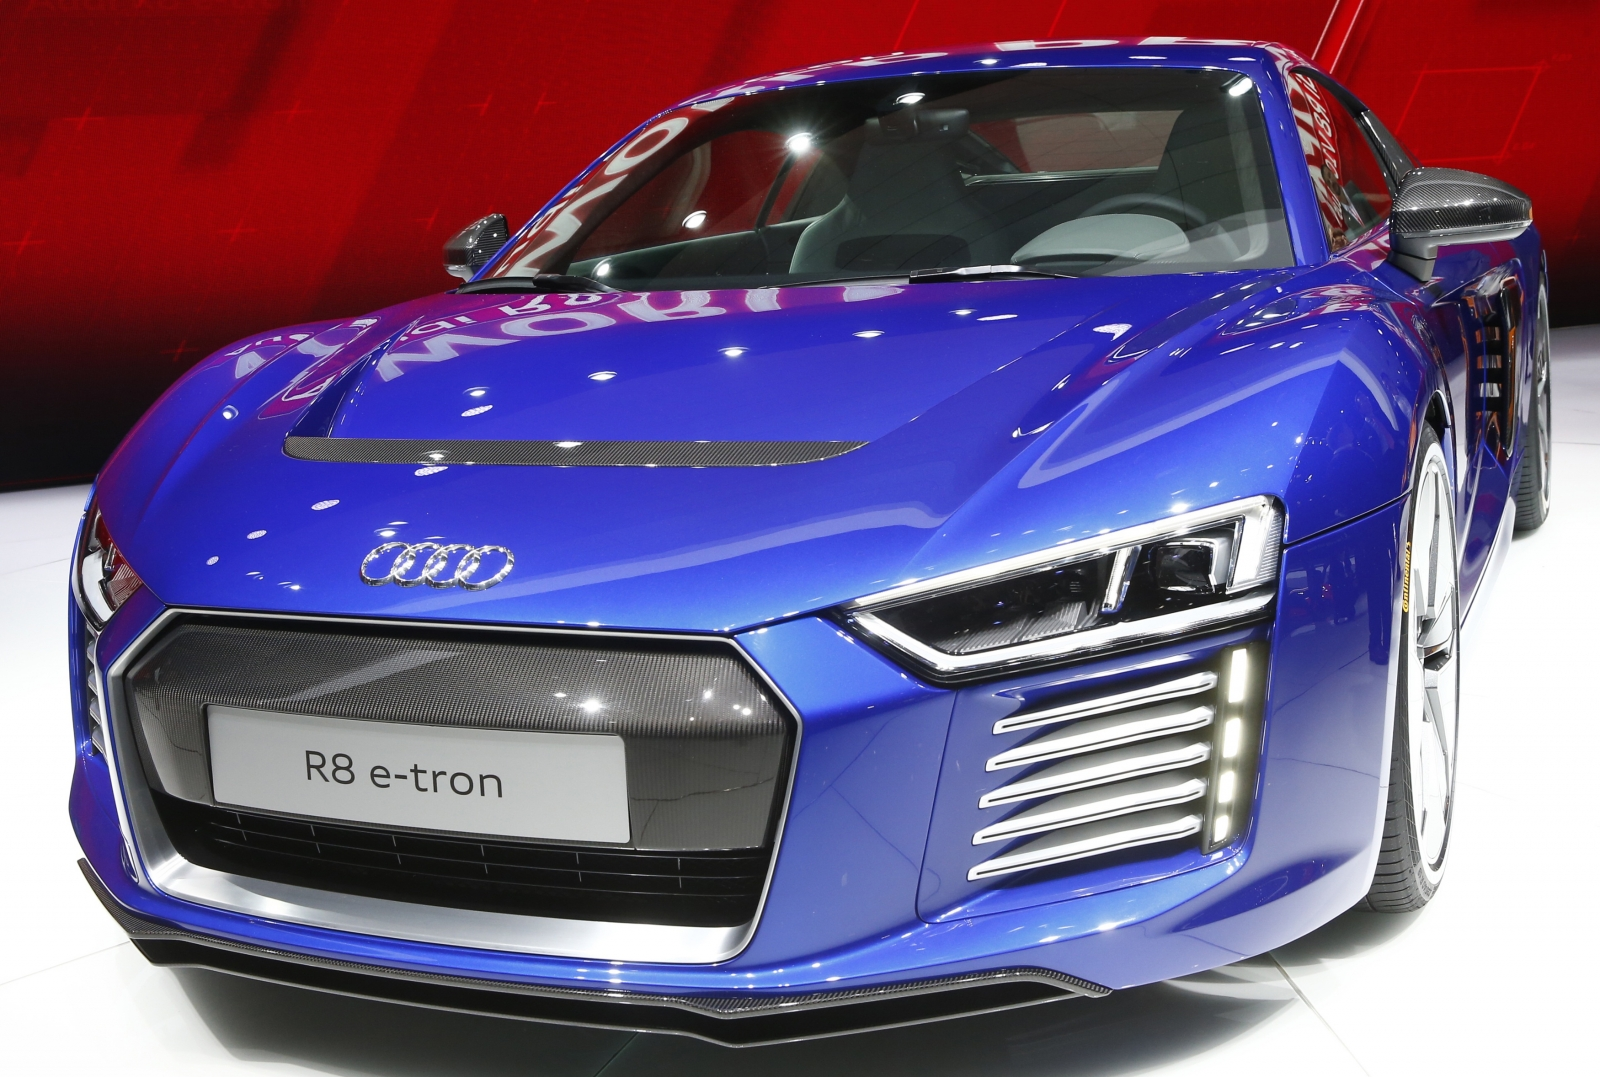 Audi Unveils Selfdriving Car R Etron In China Enabling Web - Audi r8 etron